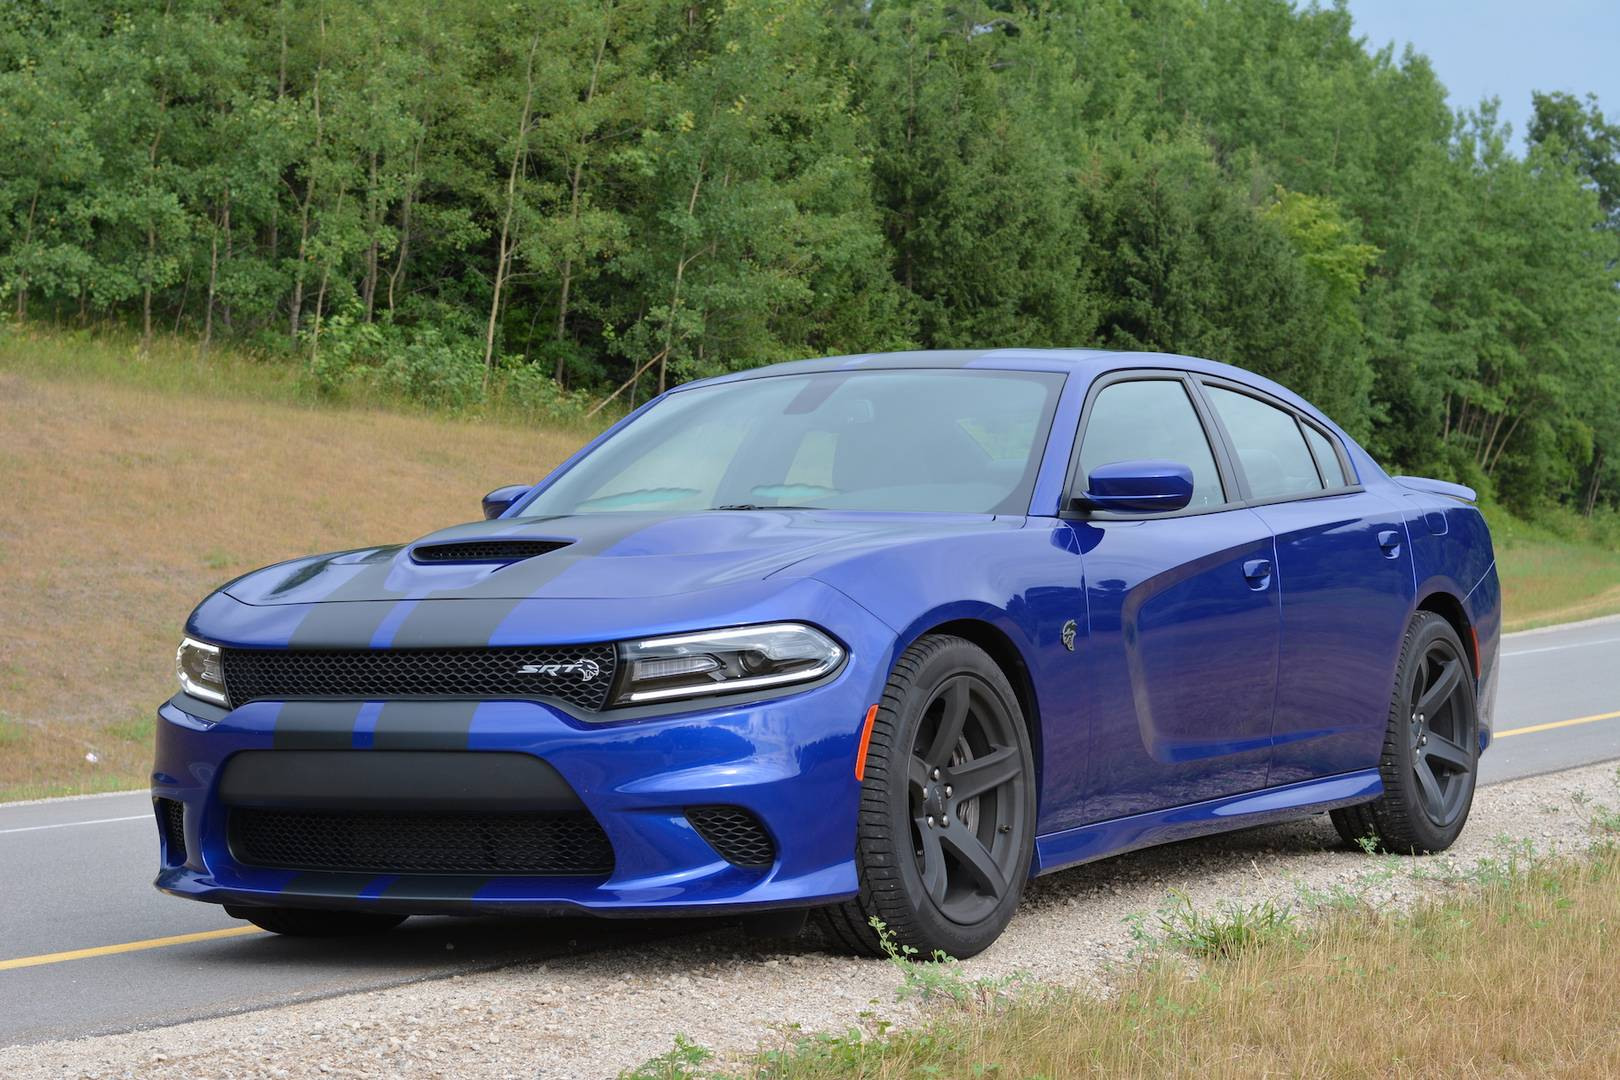 60 Best 2019 Dodge Charger Srt8 Hellcat Picture